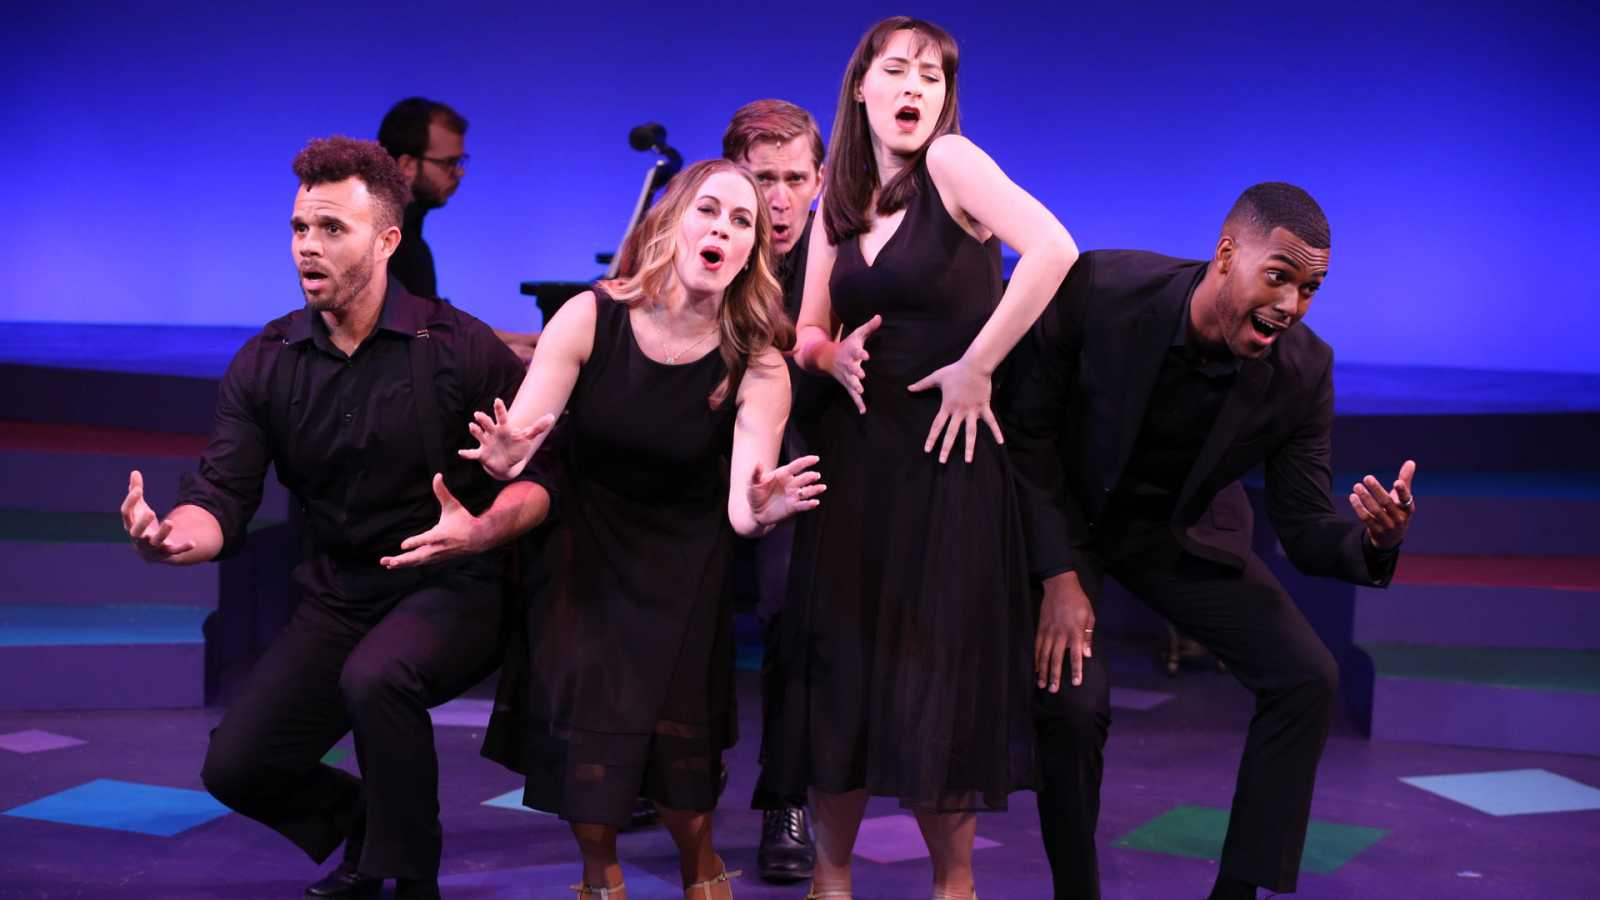 El musical - Anything can happen in the theatre: the musical world of Maury Yeston - 30/05/20 - Escuchar ahora